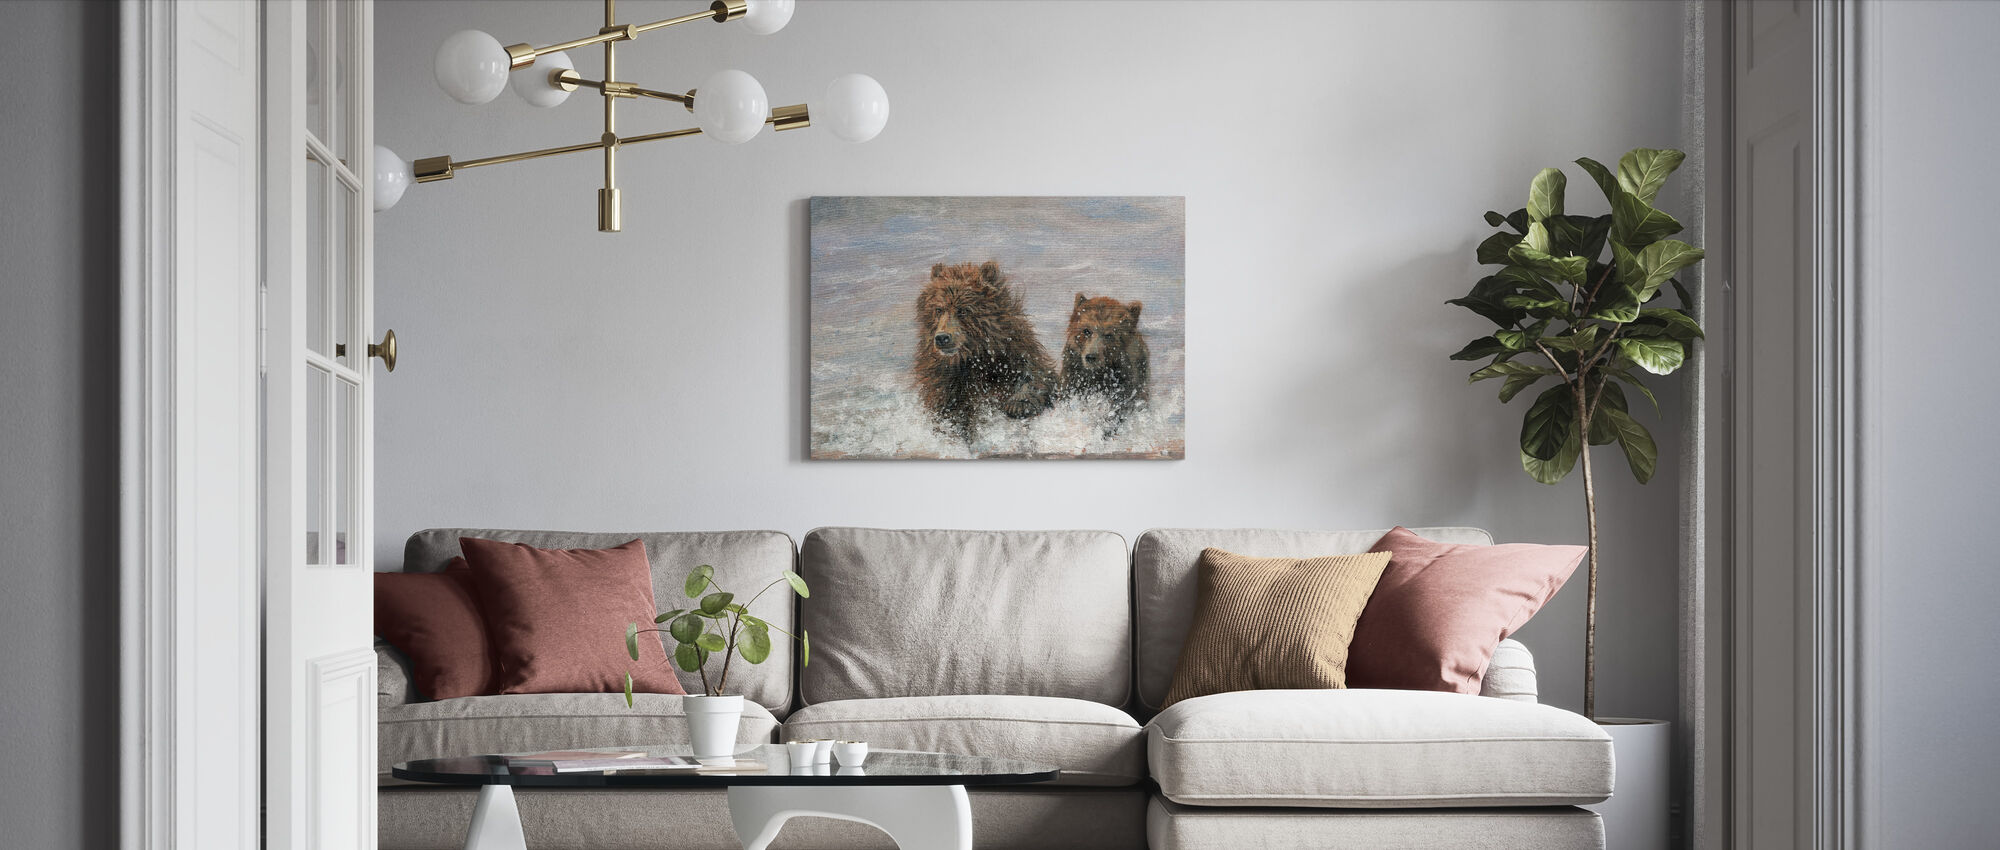 The Bears are Coming - Canvas print - Living Room